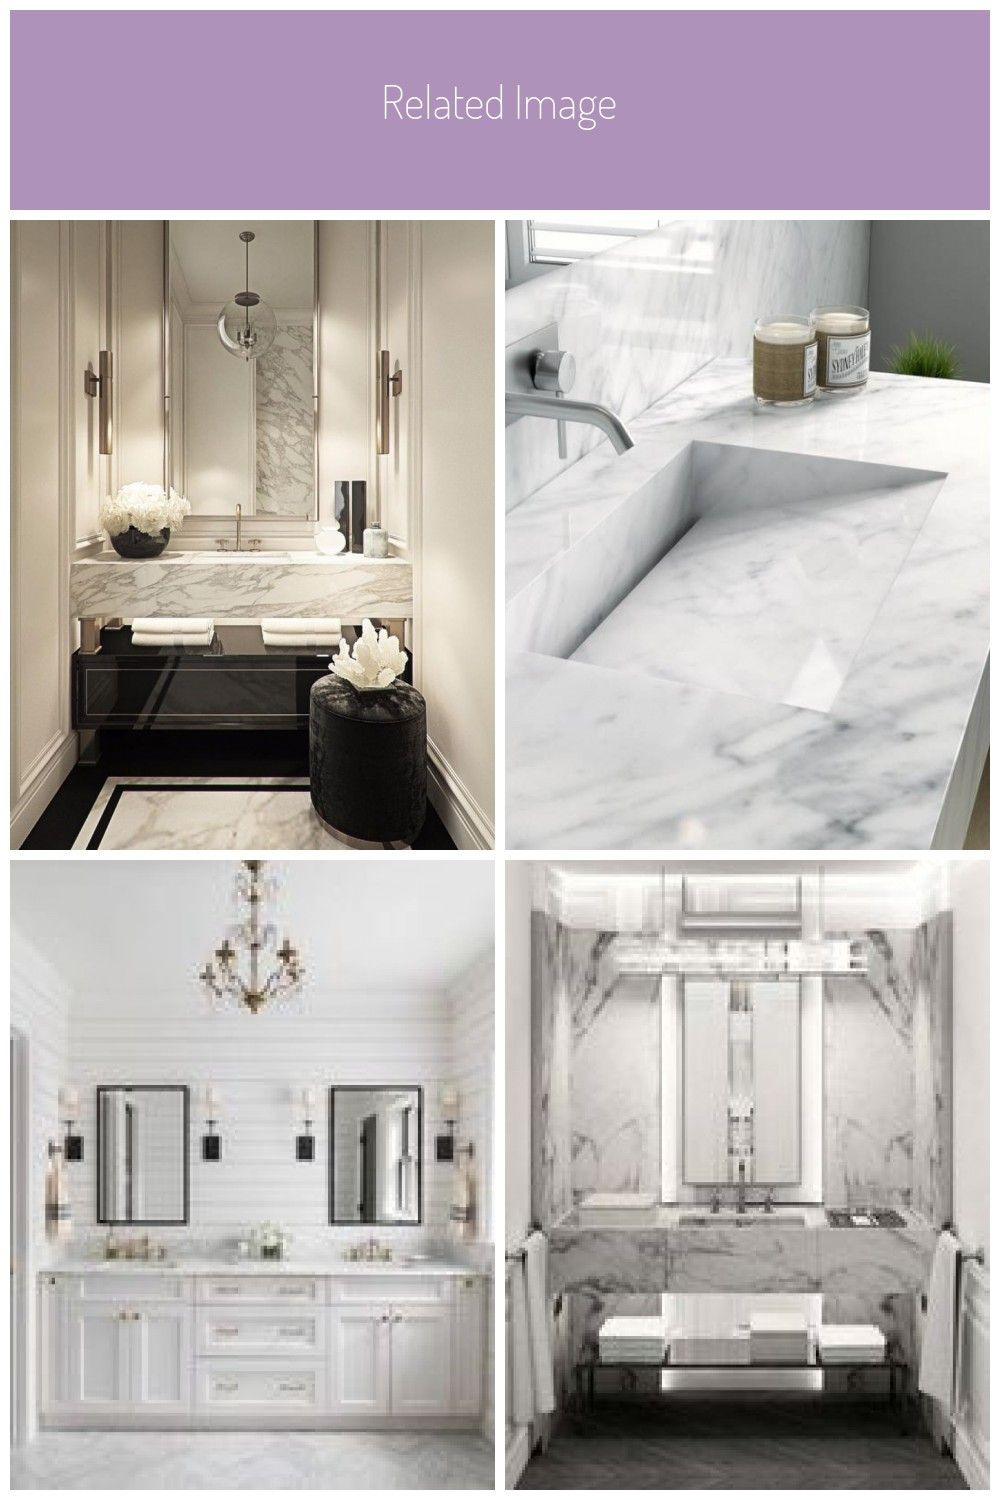 Related Image Badezimmer Marmor In 2020 Carrara